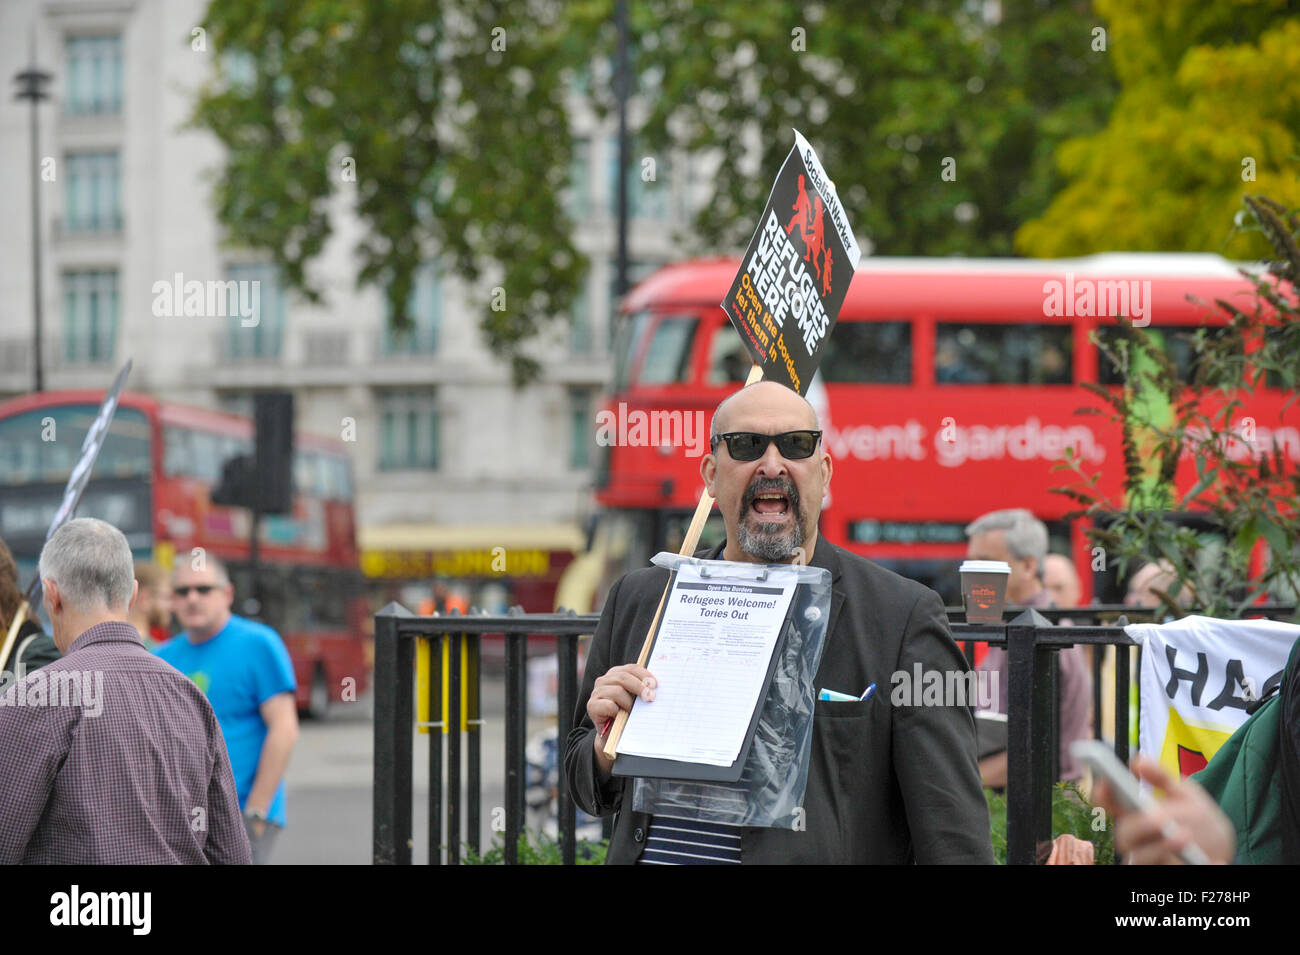 A demonstration in support of refugees and migrants in London. - Stock Image